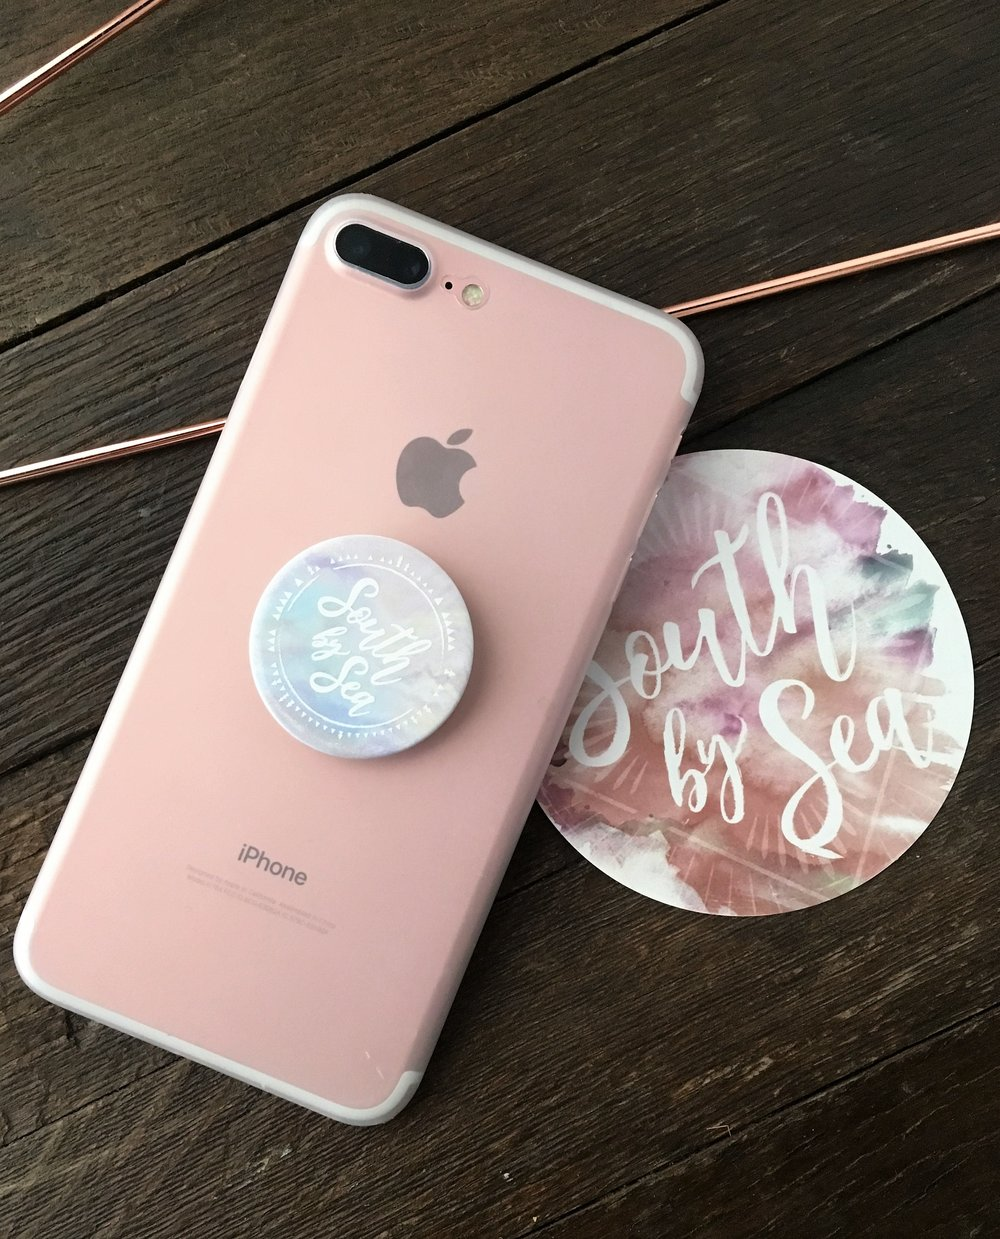 For the selfie queen... - There's bound to be someone who came to mind when we mentioned selfie! Help the selfie queen in your life step-up their Snapchat or Insta game with this perfect popsocket. Bonus, it doubles as a kickstand for the serial